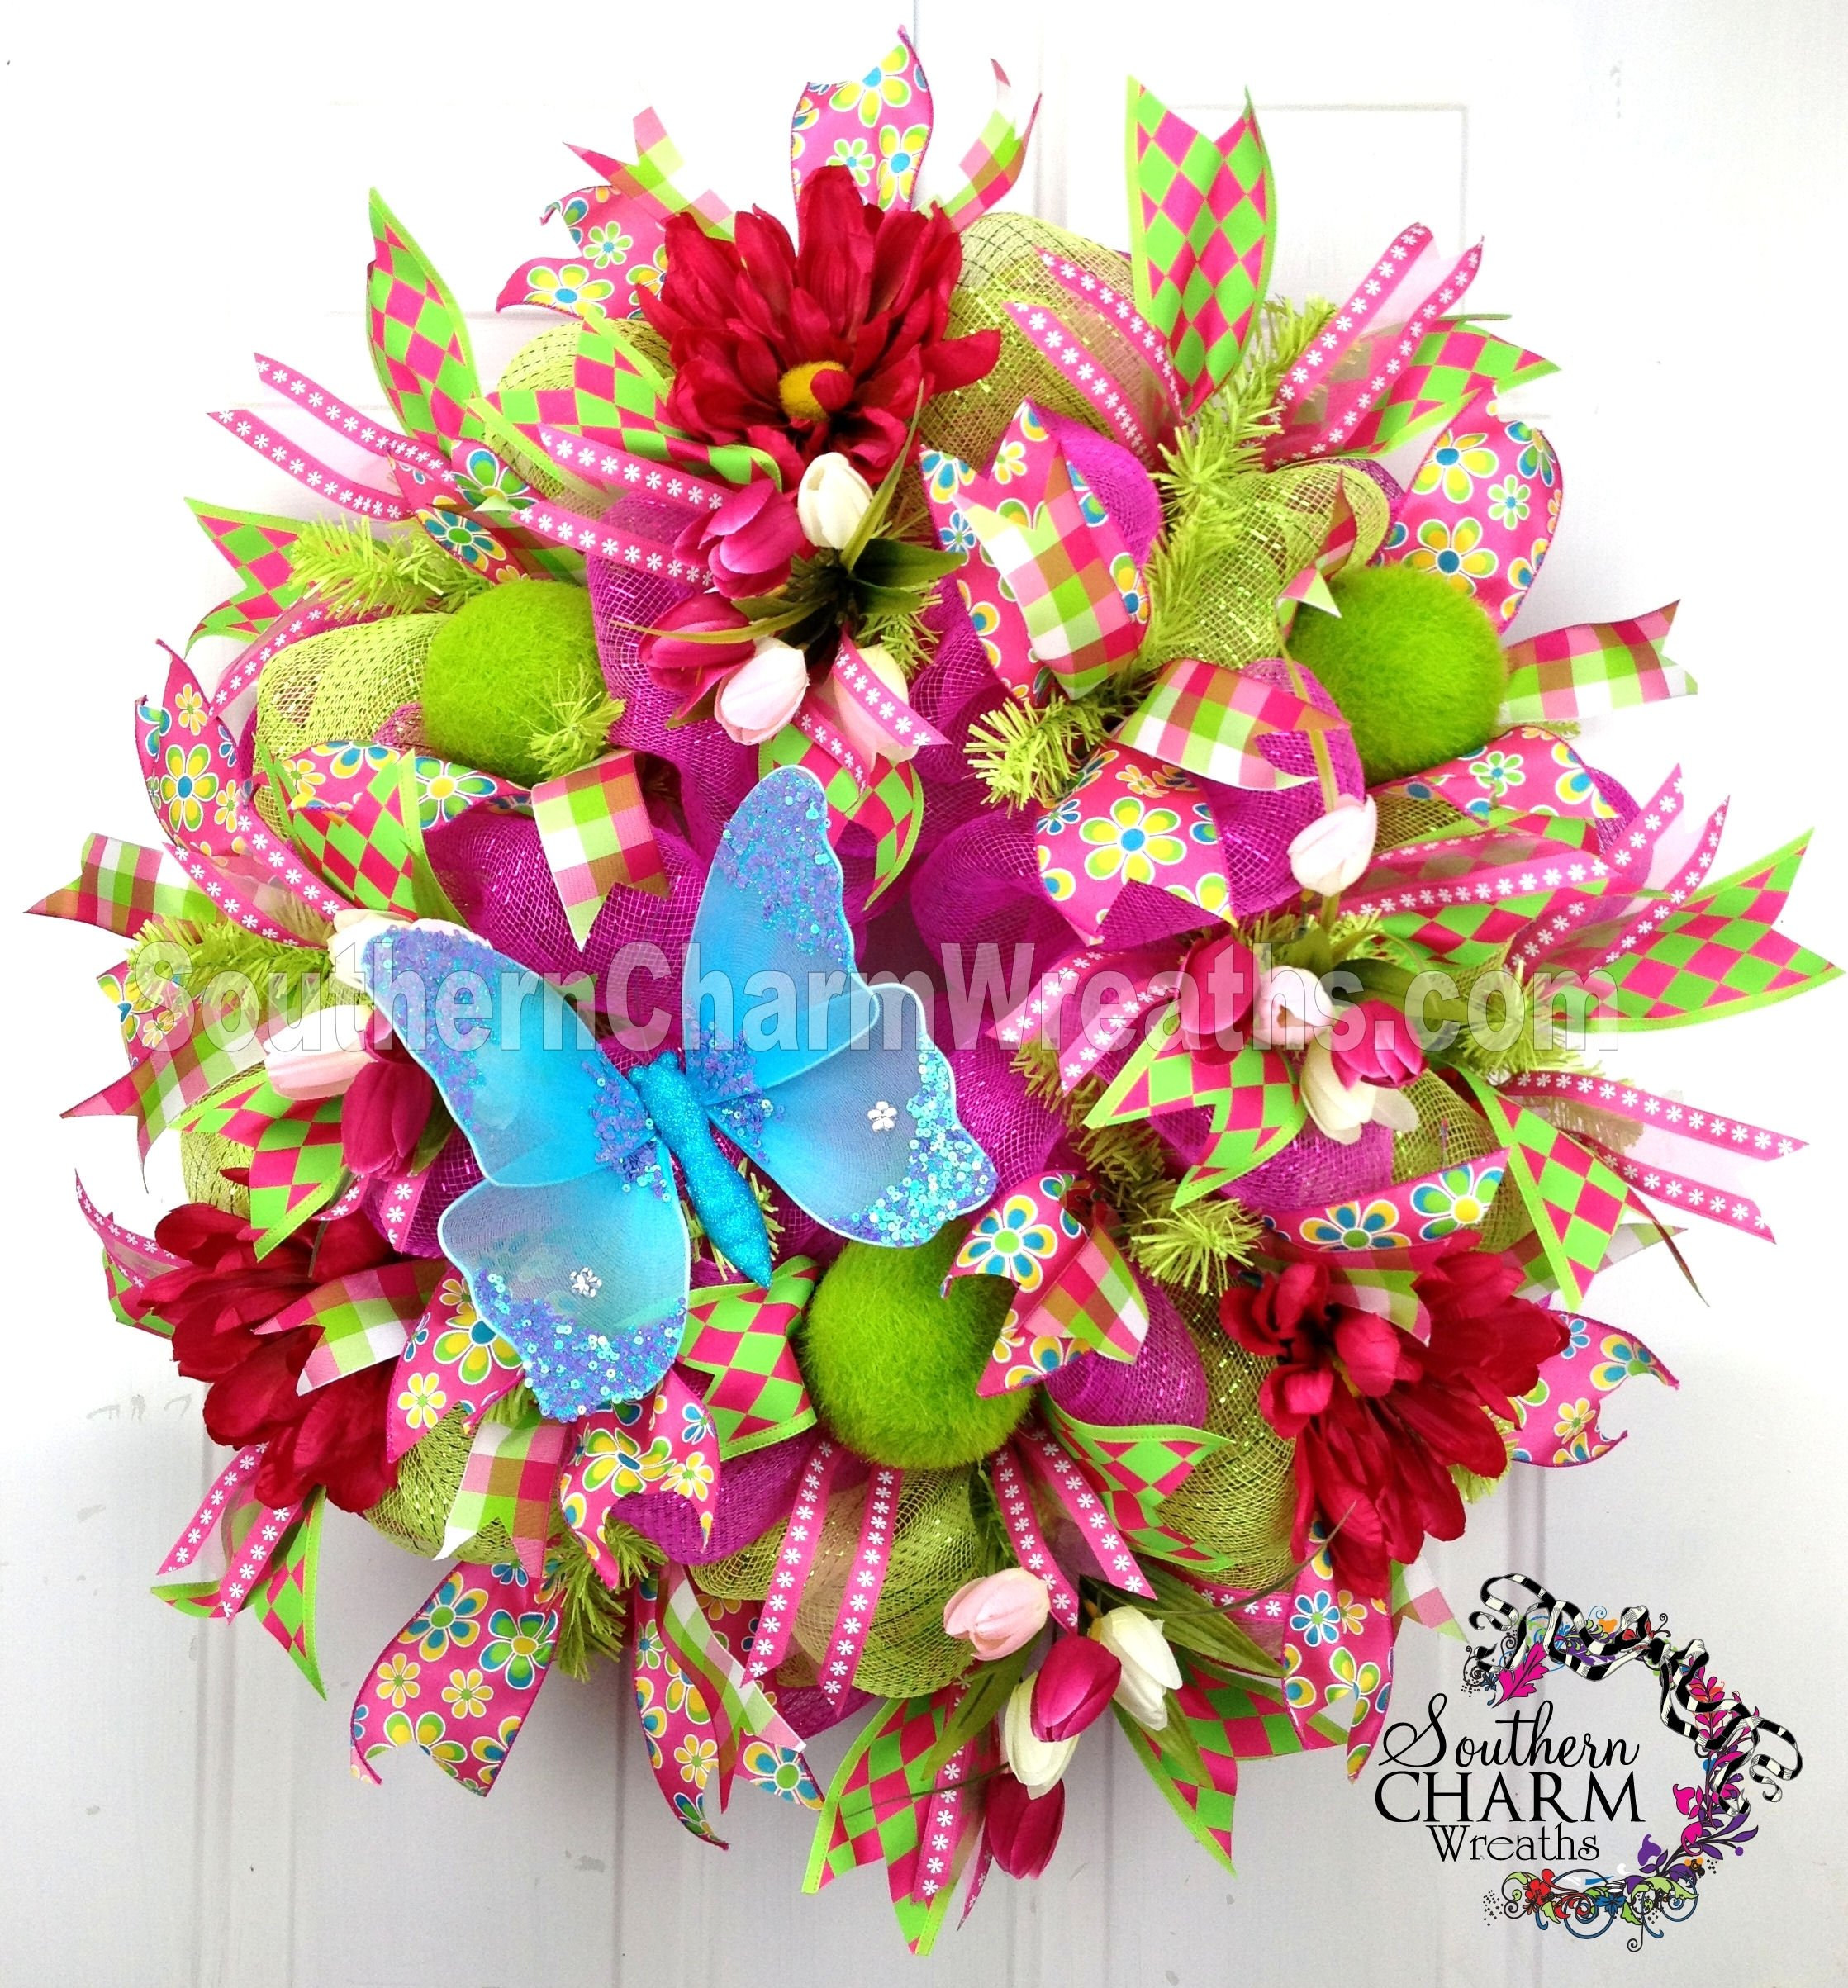 10 Fabulous Spring Deco Mesh Wreath Ideas deco mesh wreaths twist tie dilemma solved wreaths spring and 2020